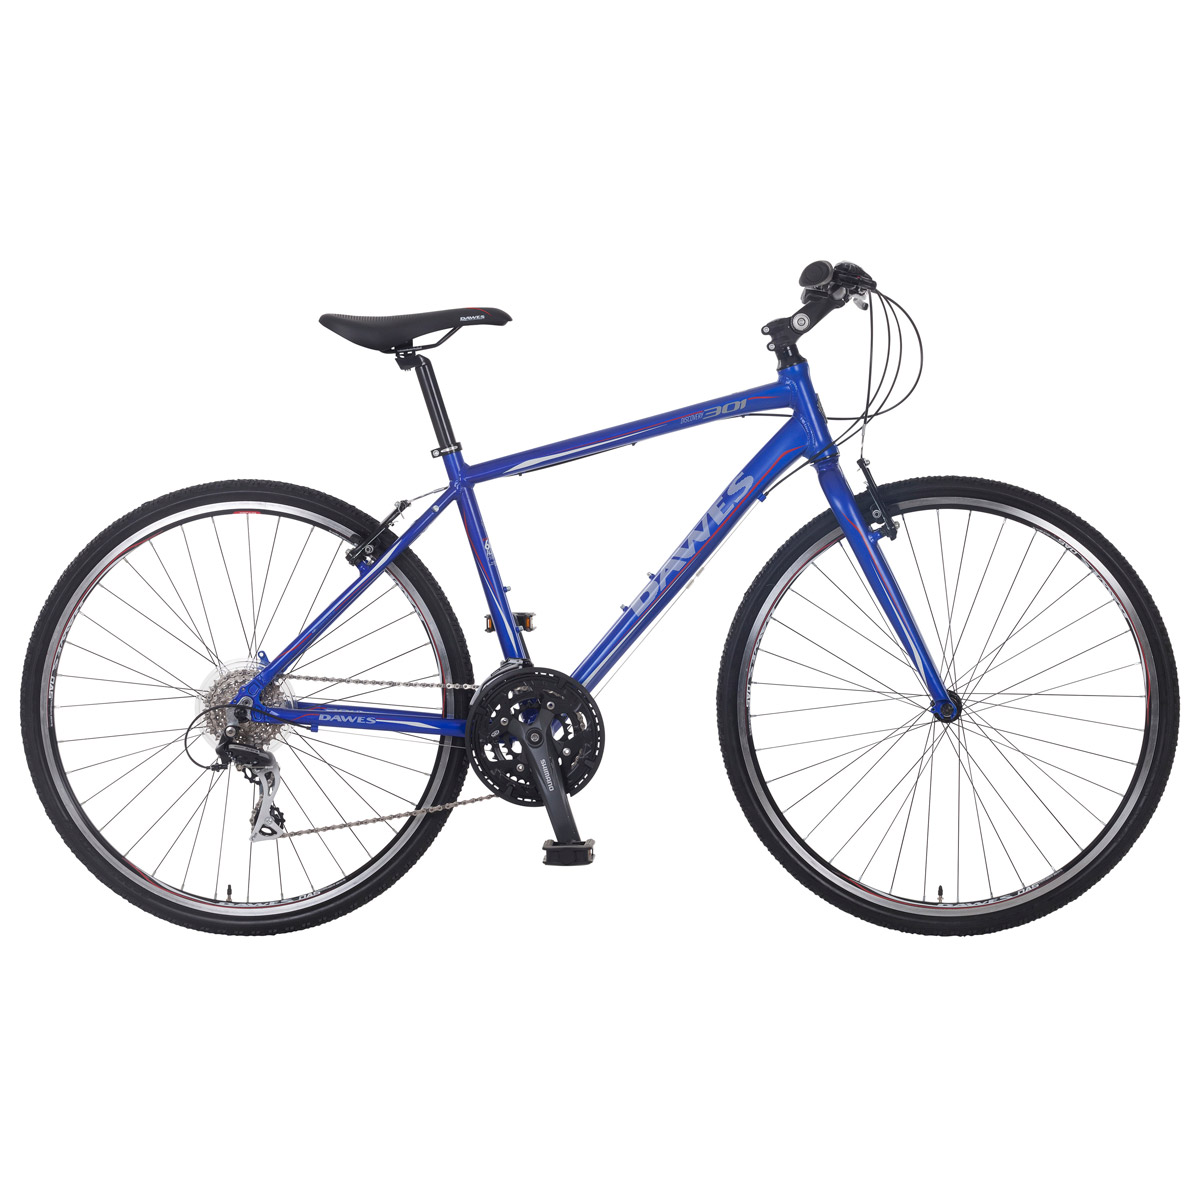 Dawes Discovery 301 Hybrid Bike – 2 Days Hire